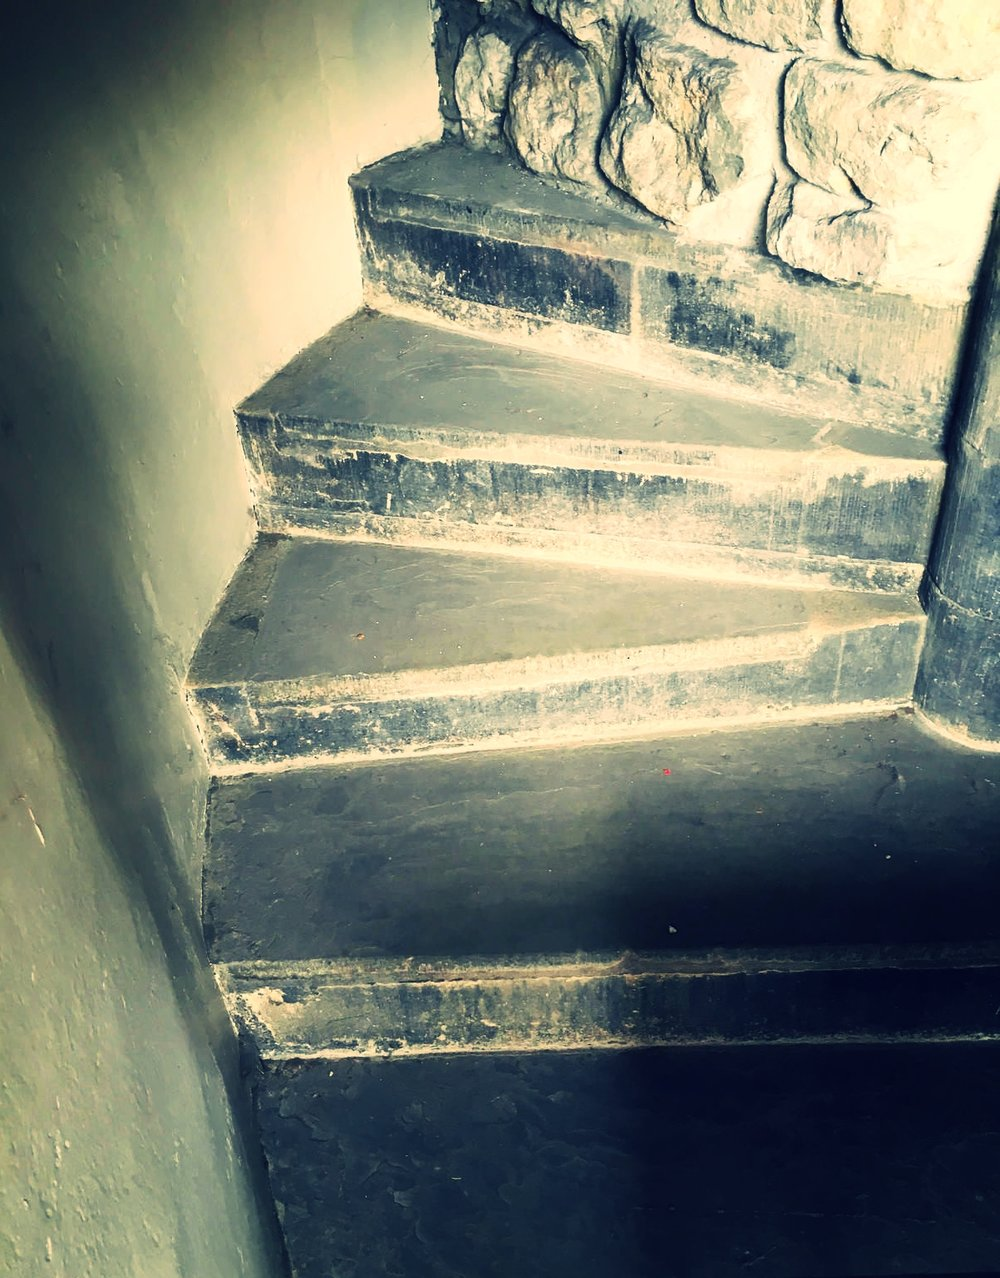 Stairs in the White Tower beneath which the bones are said to have been discovered, via  Atlas Obscura